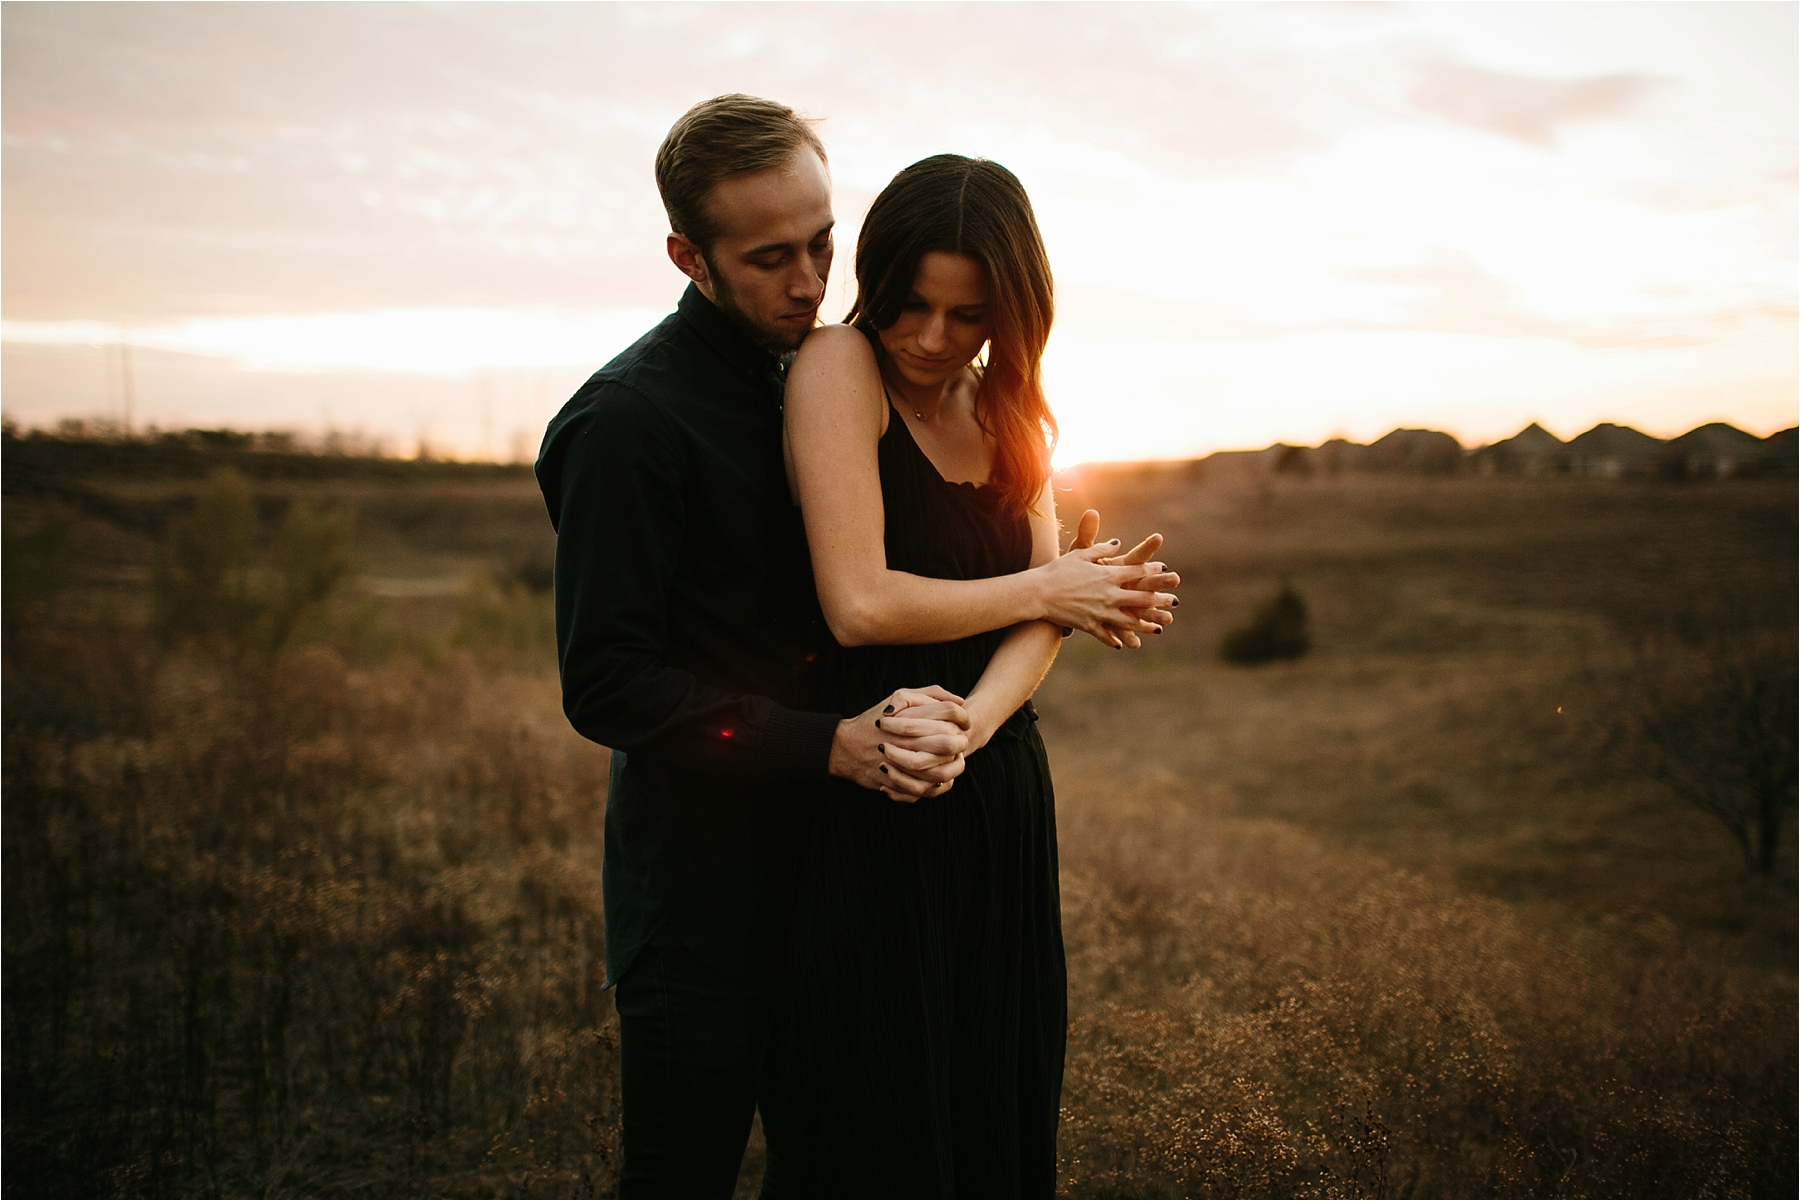 Trey + Phoebe __ a playful, intimate engagement session with dark_neutral outfit inspiration by North Texas Wedding Photographer Rachel Meagan Photography __ 55